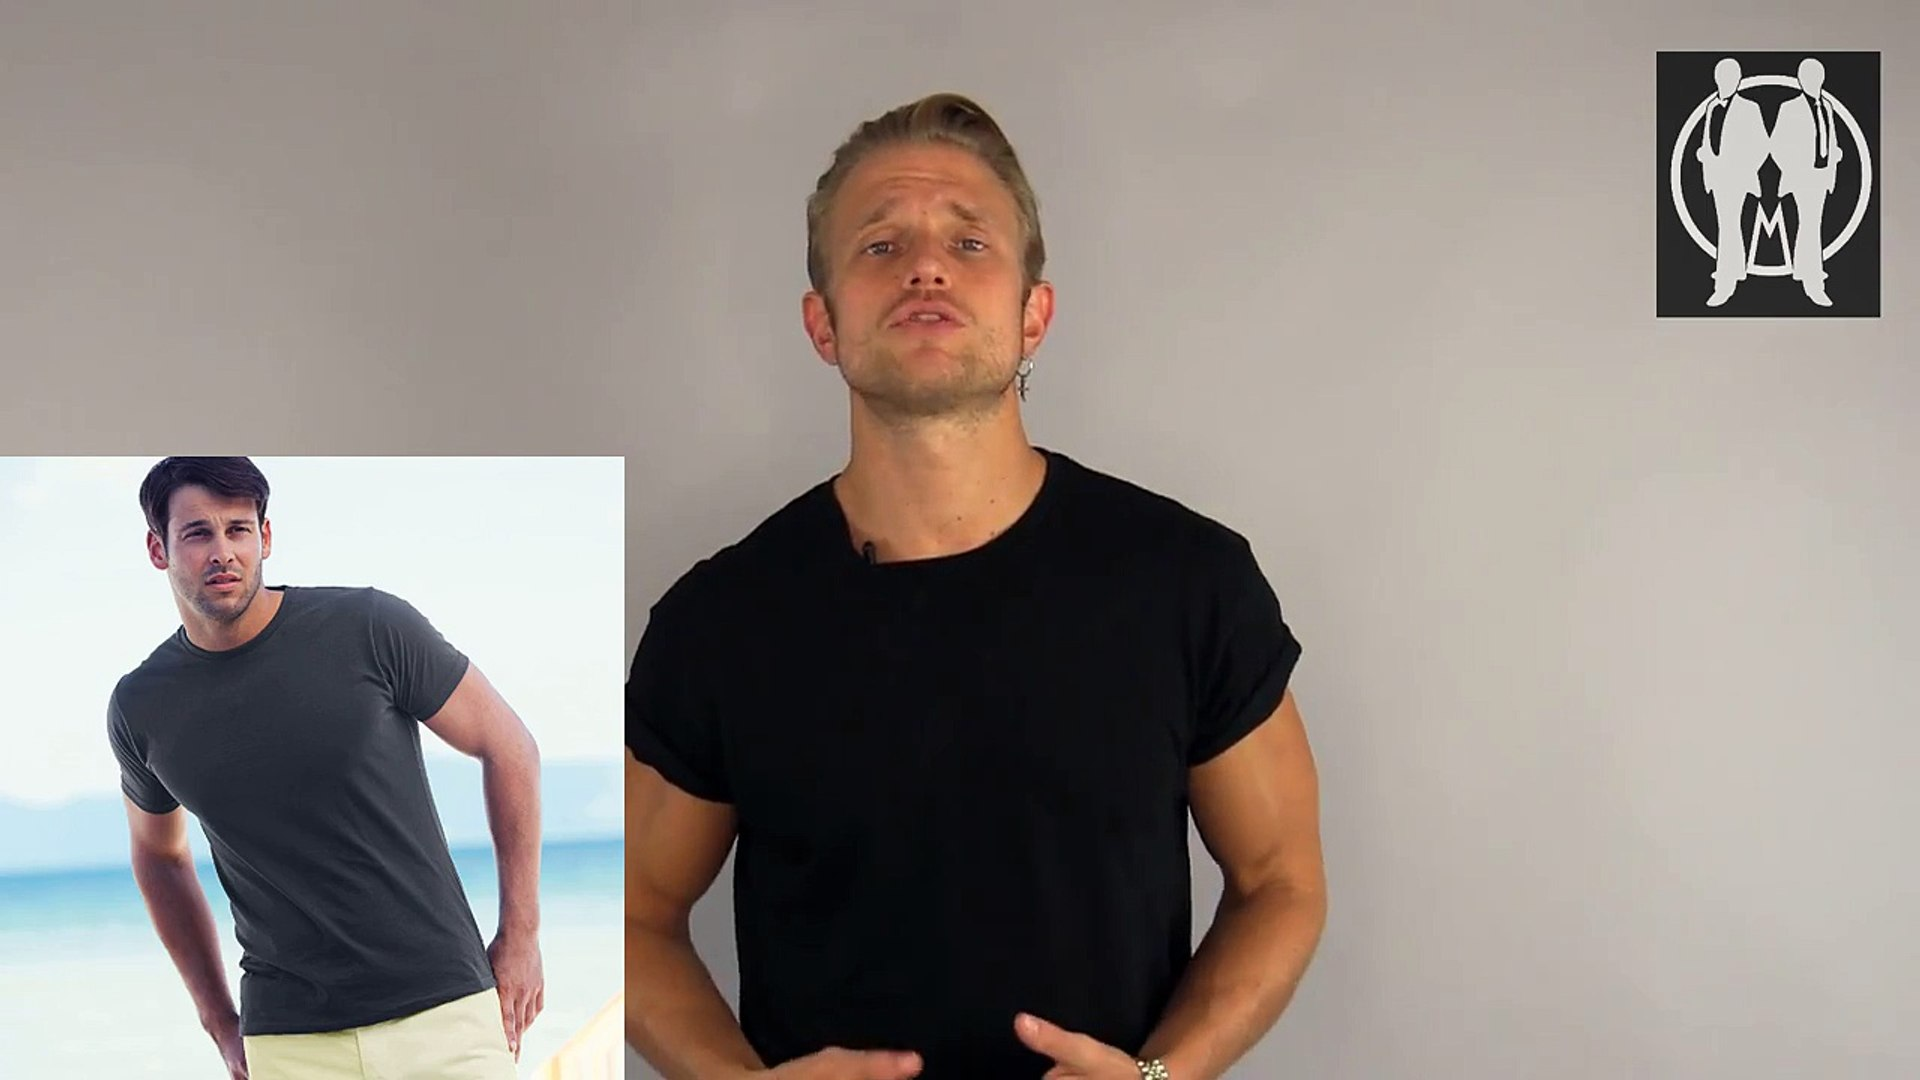 How To Look More Muscular In Your Clothes - 5 Style Tips To Dress More Muscular - Look Muscular